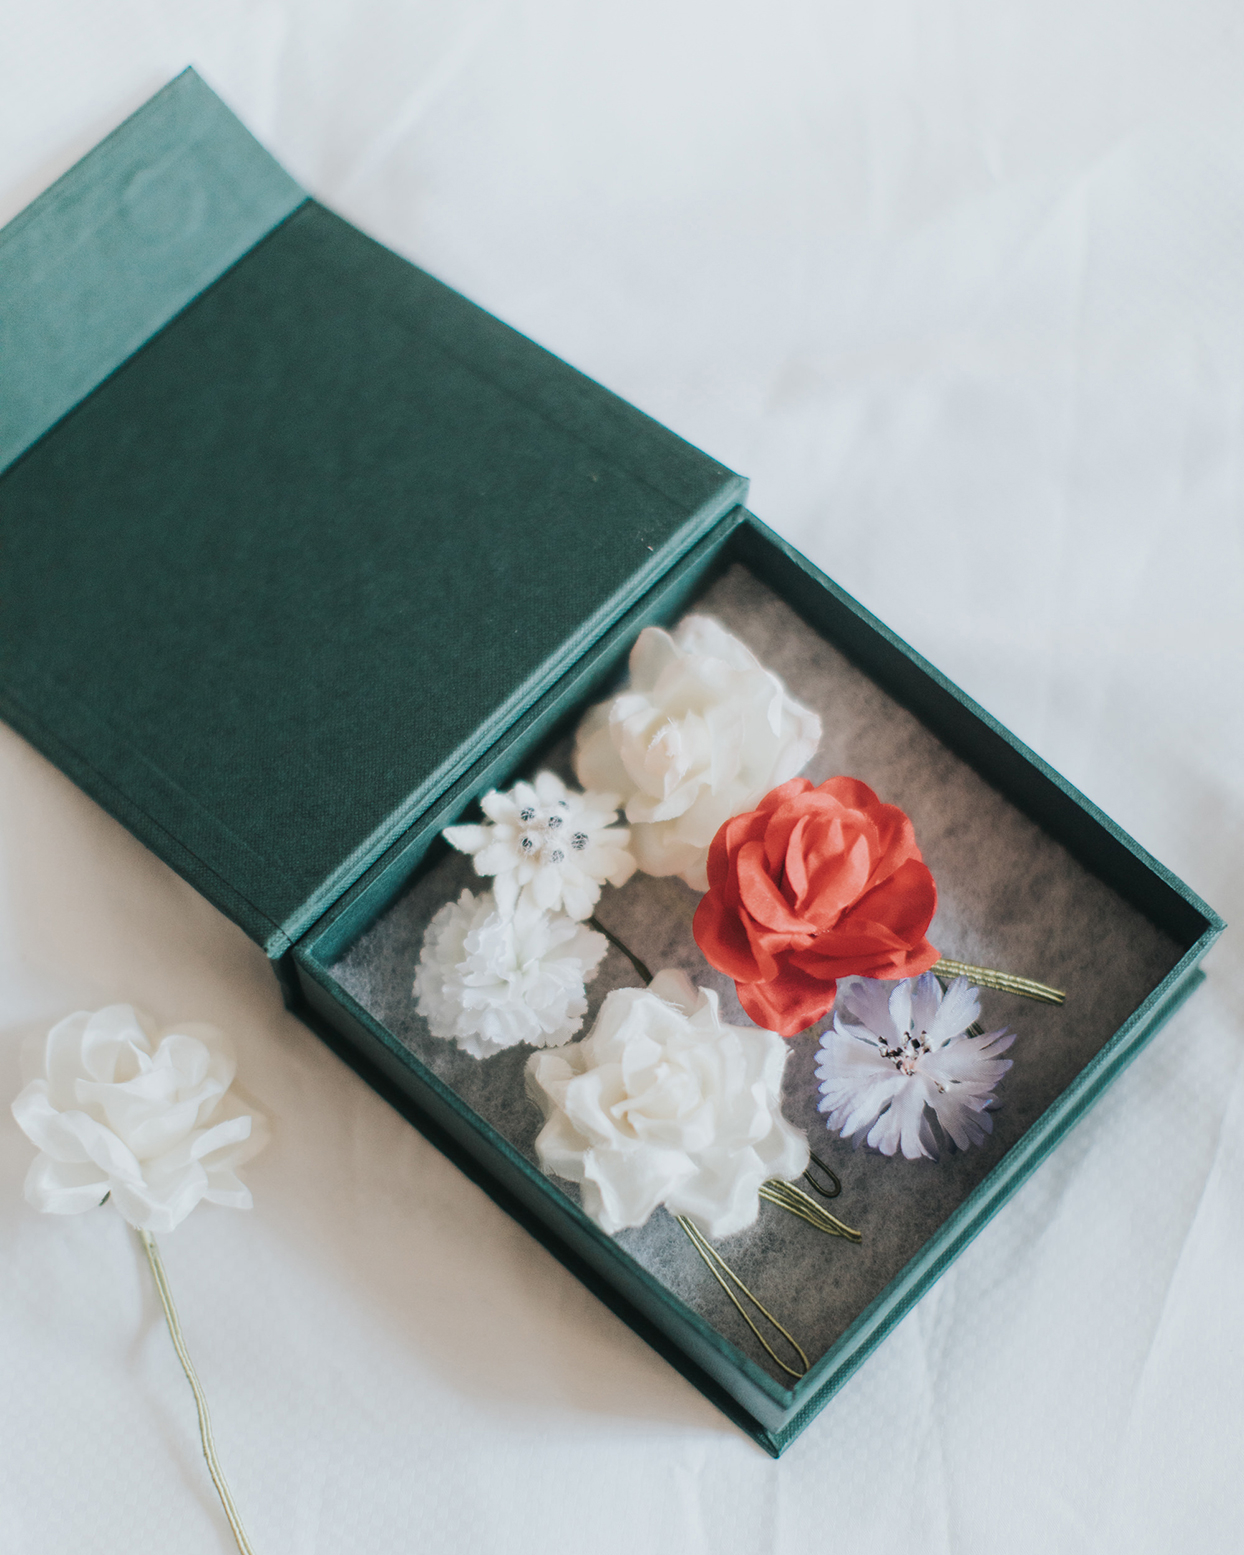 kiira arthur wedding hair flowers in box